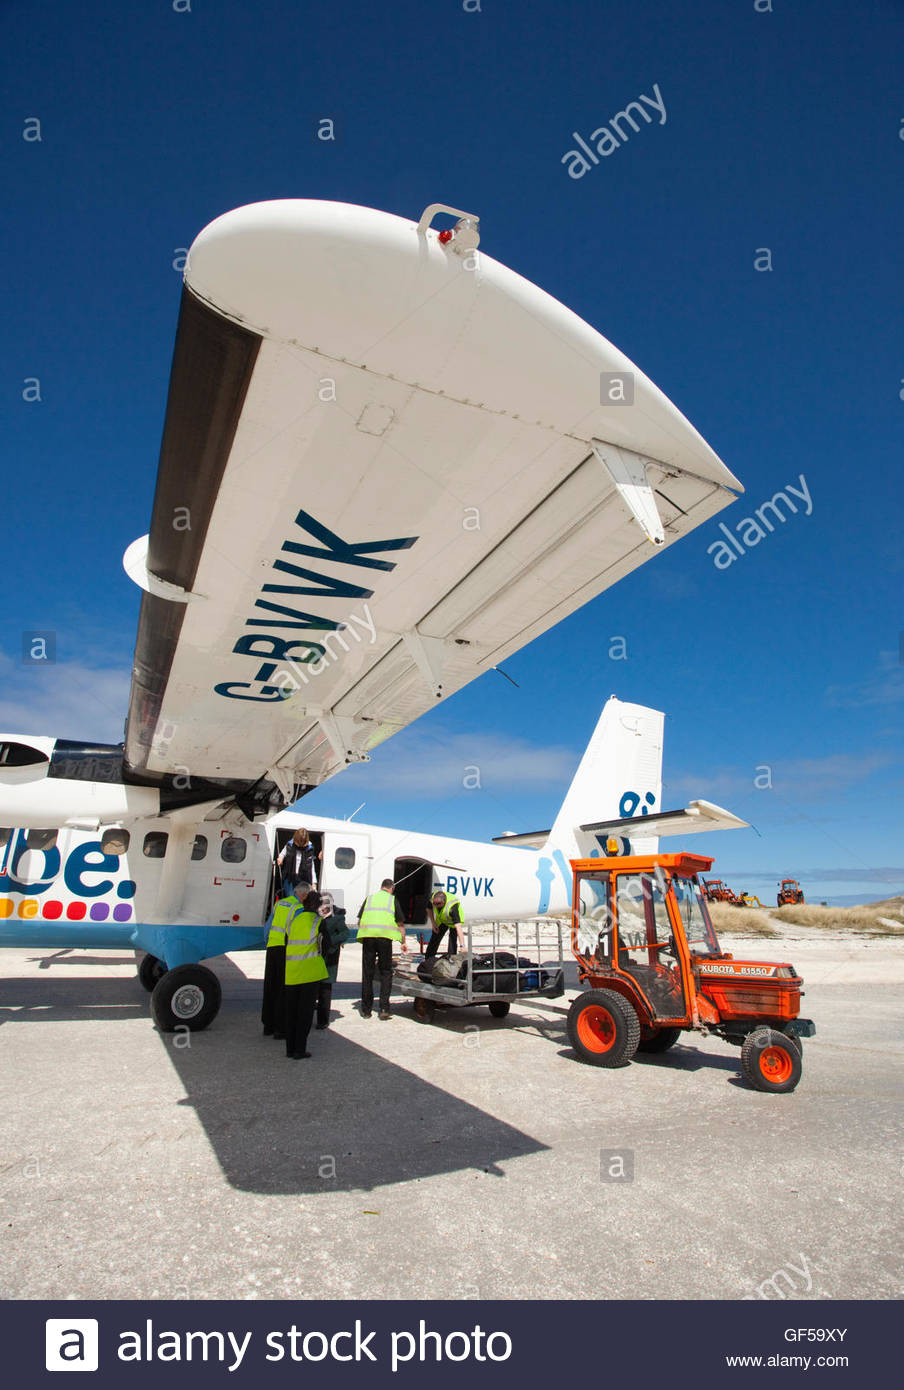 Unloading luggage from an aeroplane on Traigh Mhor Beach - the runway for the Isle of Barra Airport, Outer Hebrides. - Stock Image